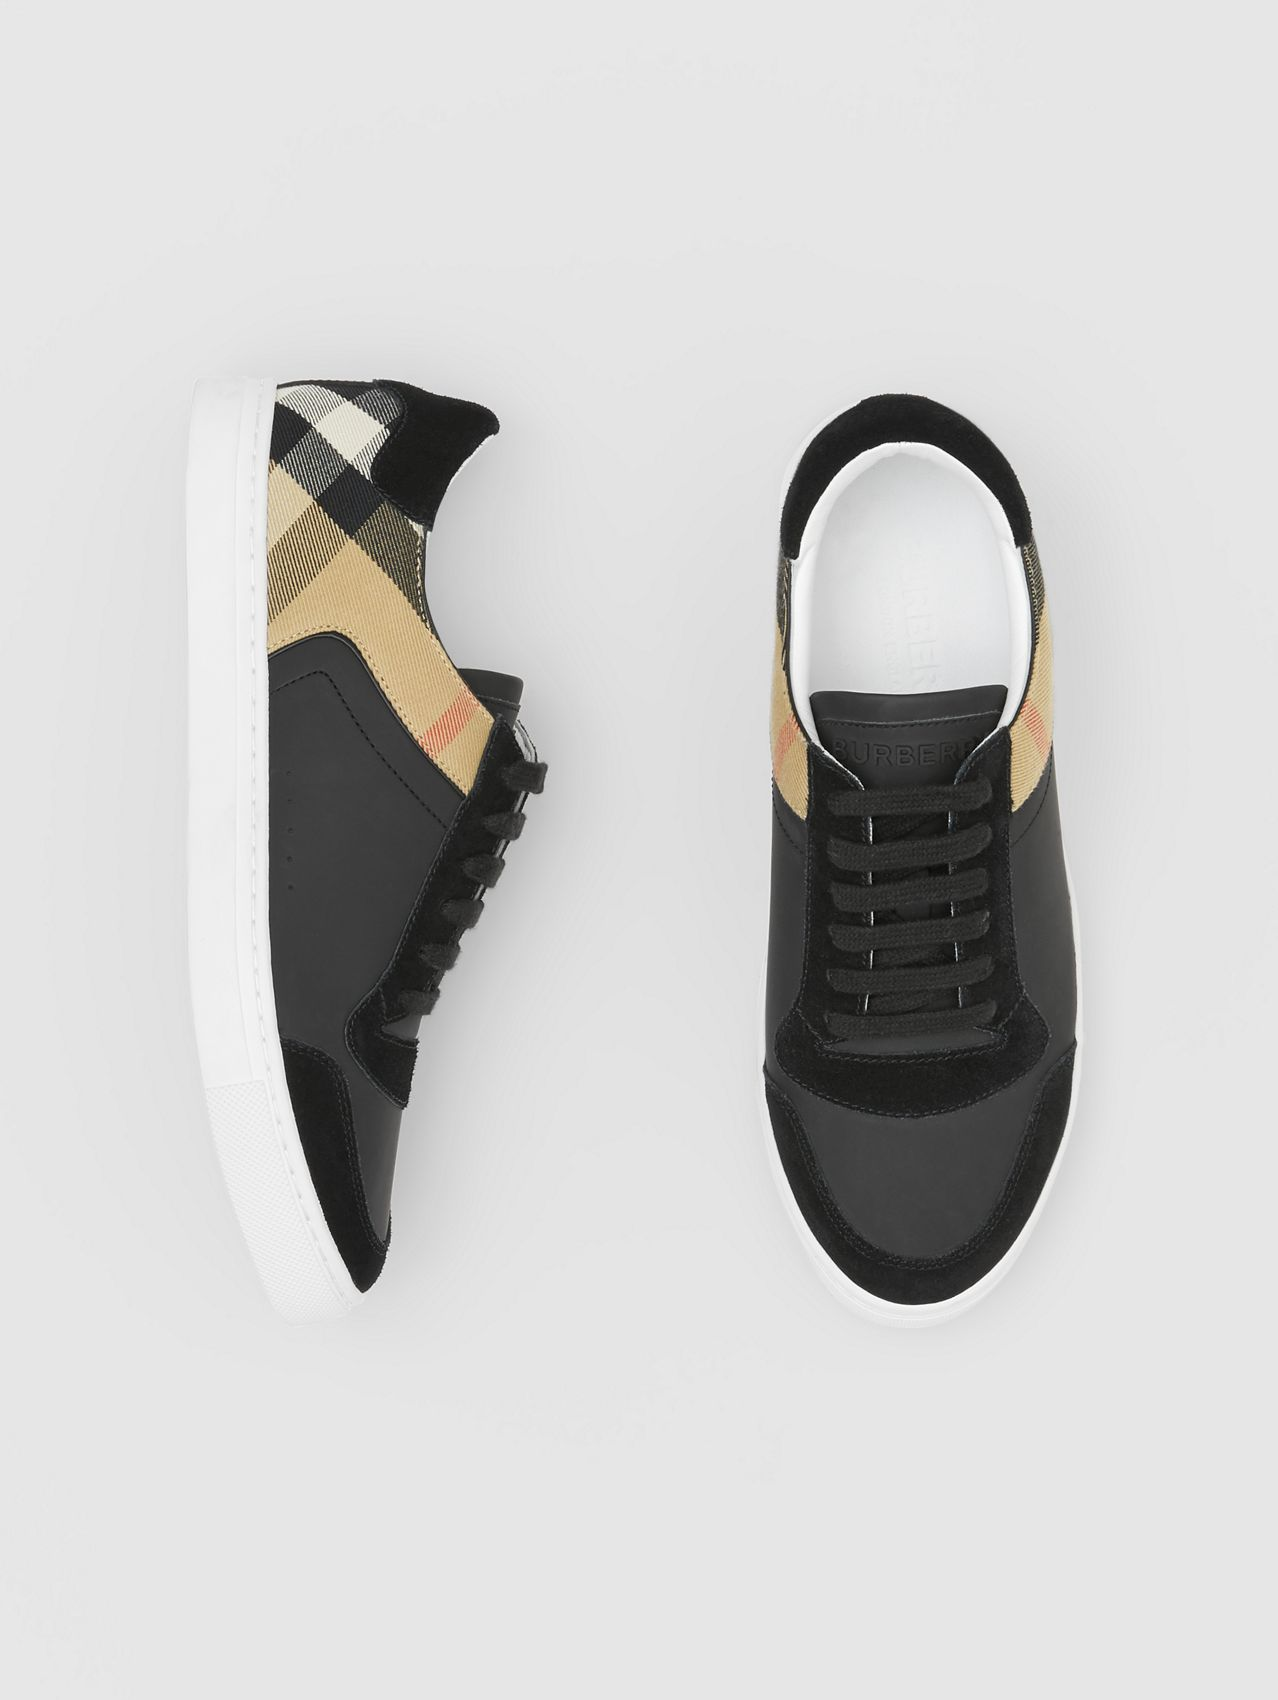 Leather, Suede and House Check Sneakers in Black